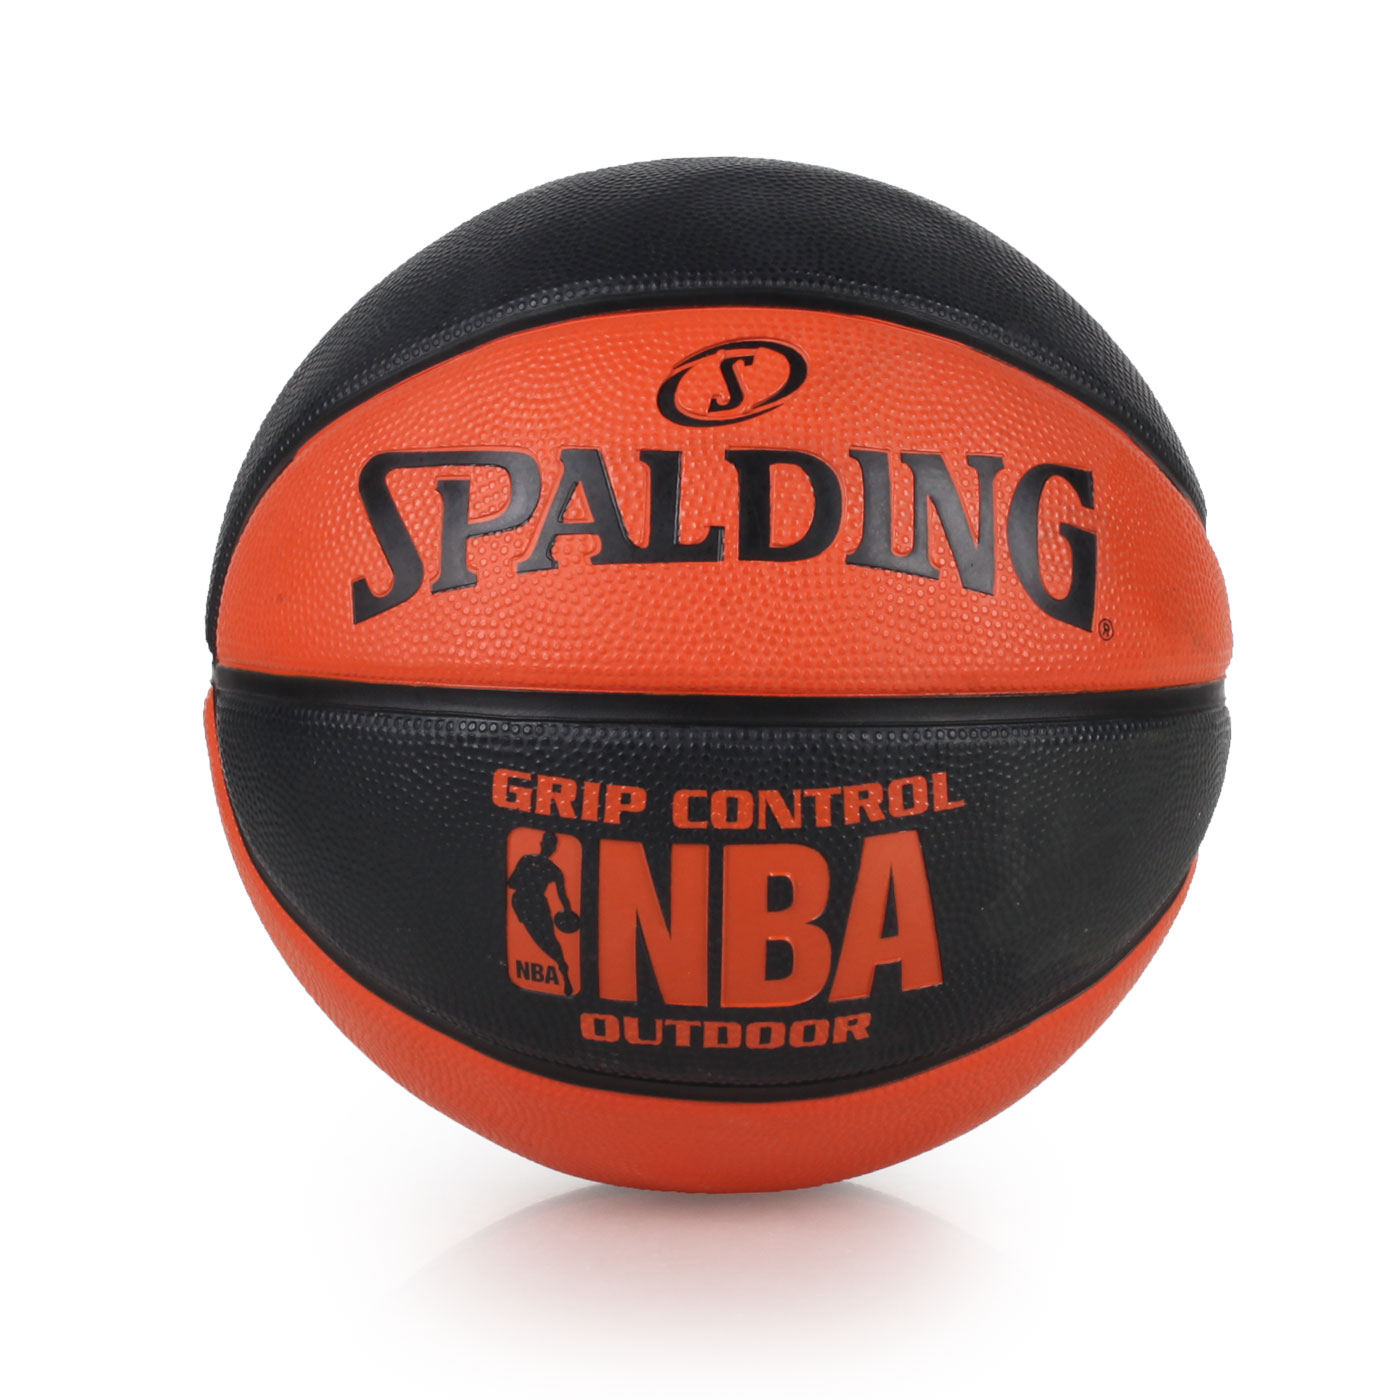 SPALDING NBA Grip Control Outdoor 籃球 SPA83081 - 黑橘